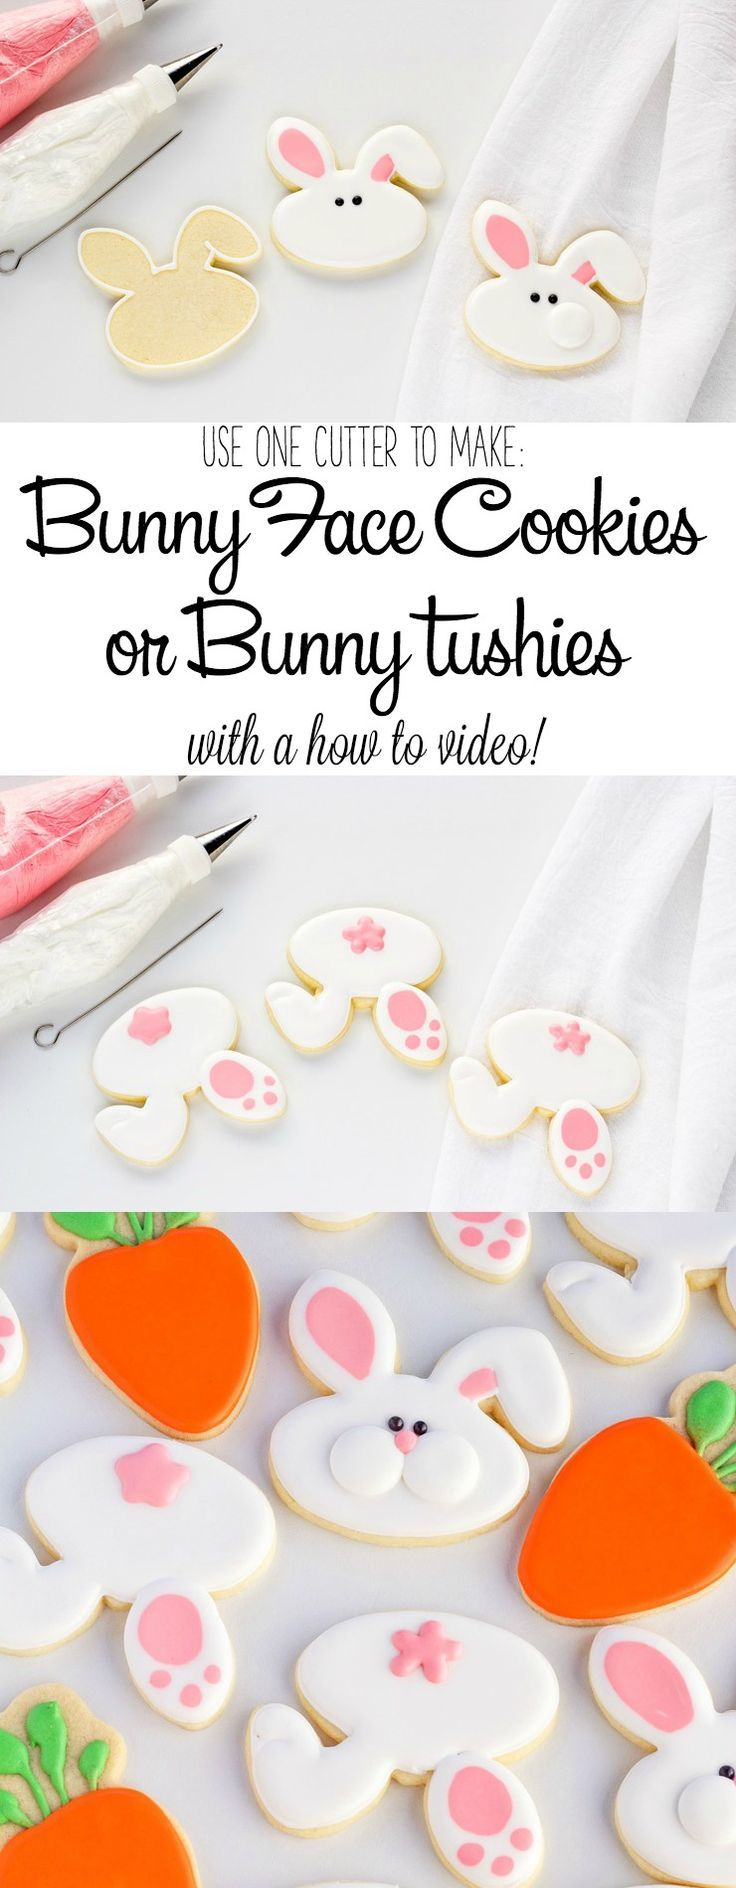 How to Use One Cookie Cutter to Make Bunny Face Cookies or Cute Little Bunny Tushies with a Video Tutorial   The Bearfoot Baker